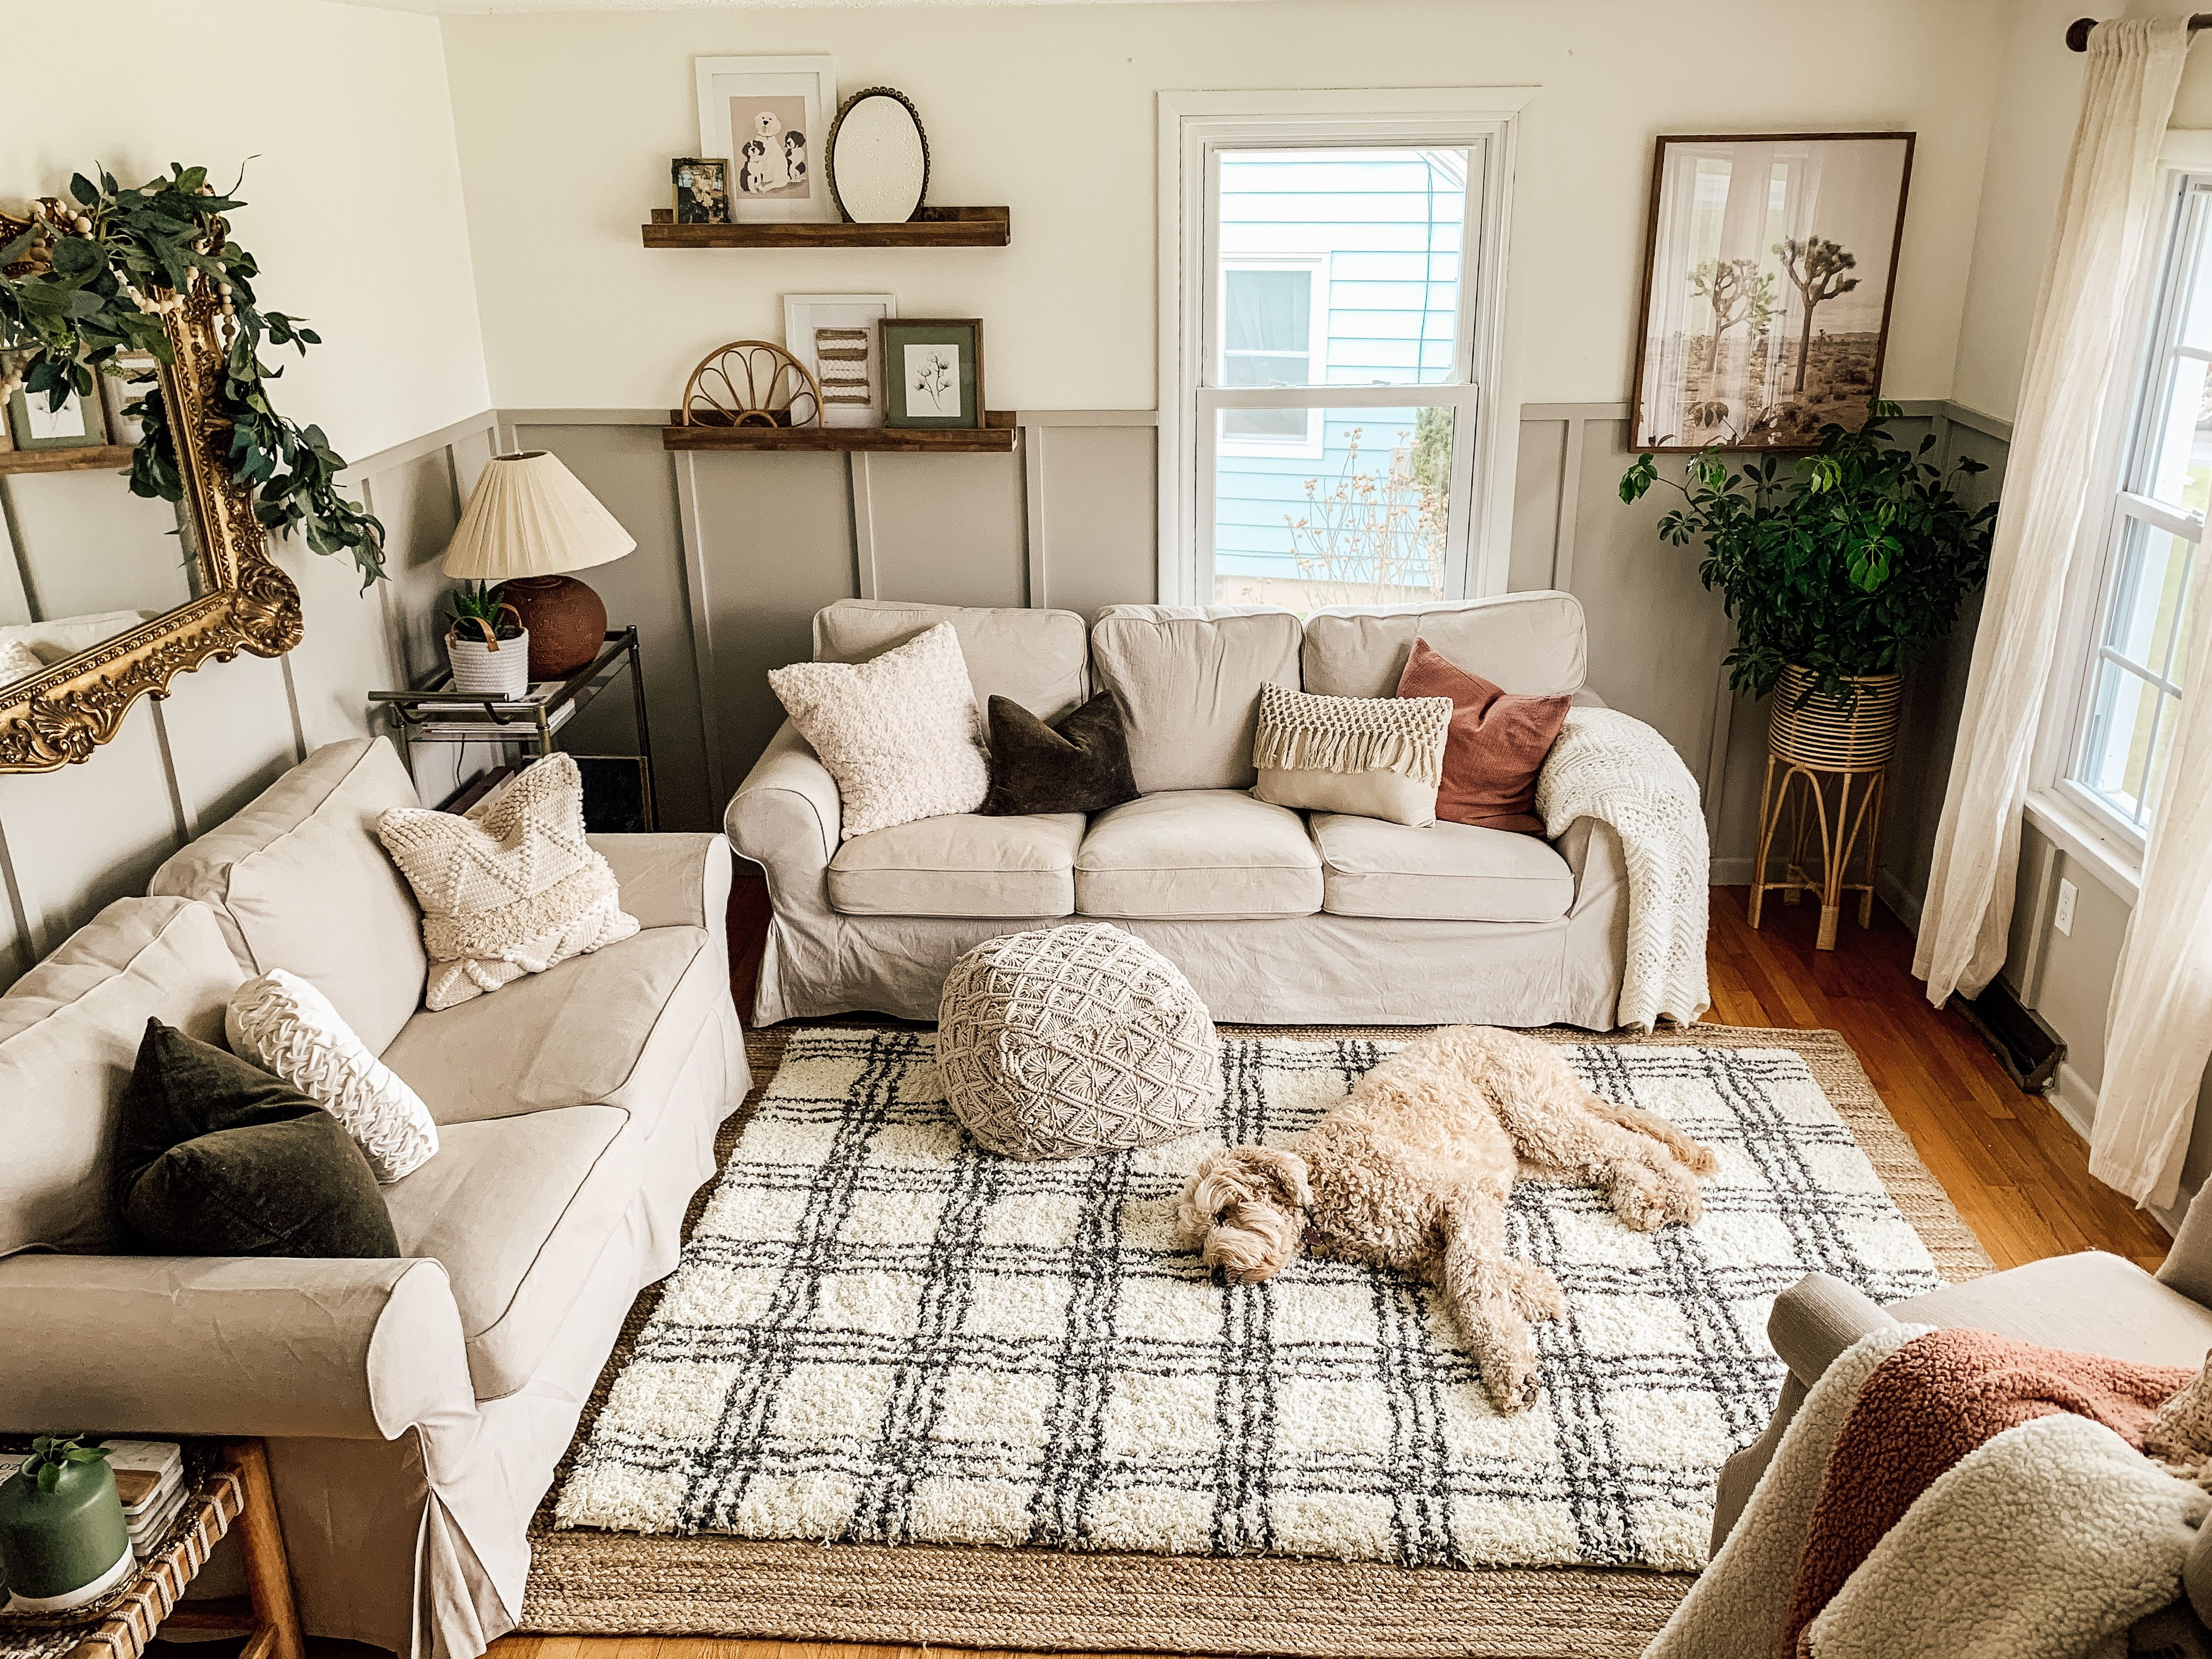 Pin On Update My Cape Blog Posts #small #cottage #living #room